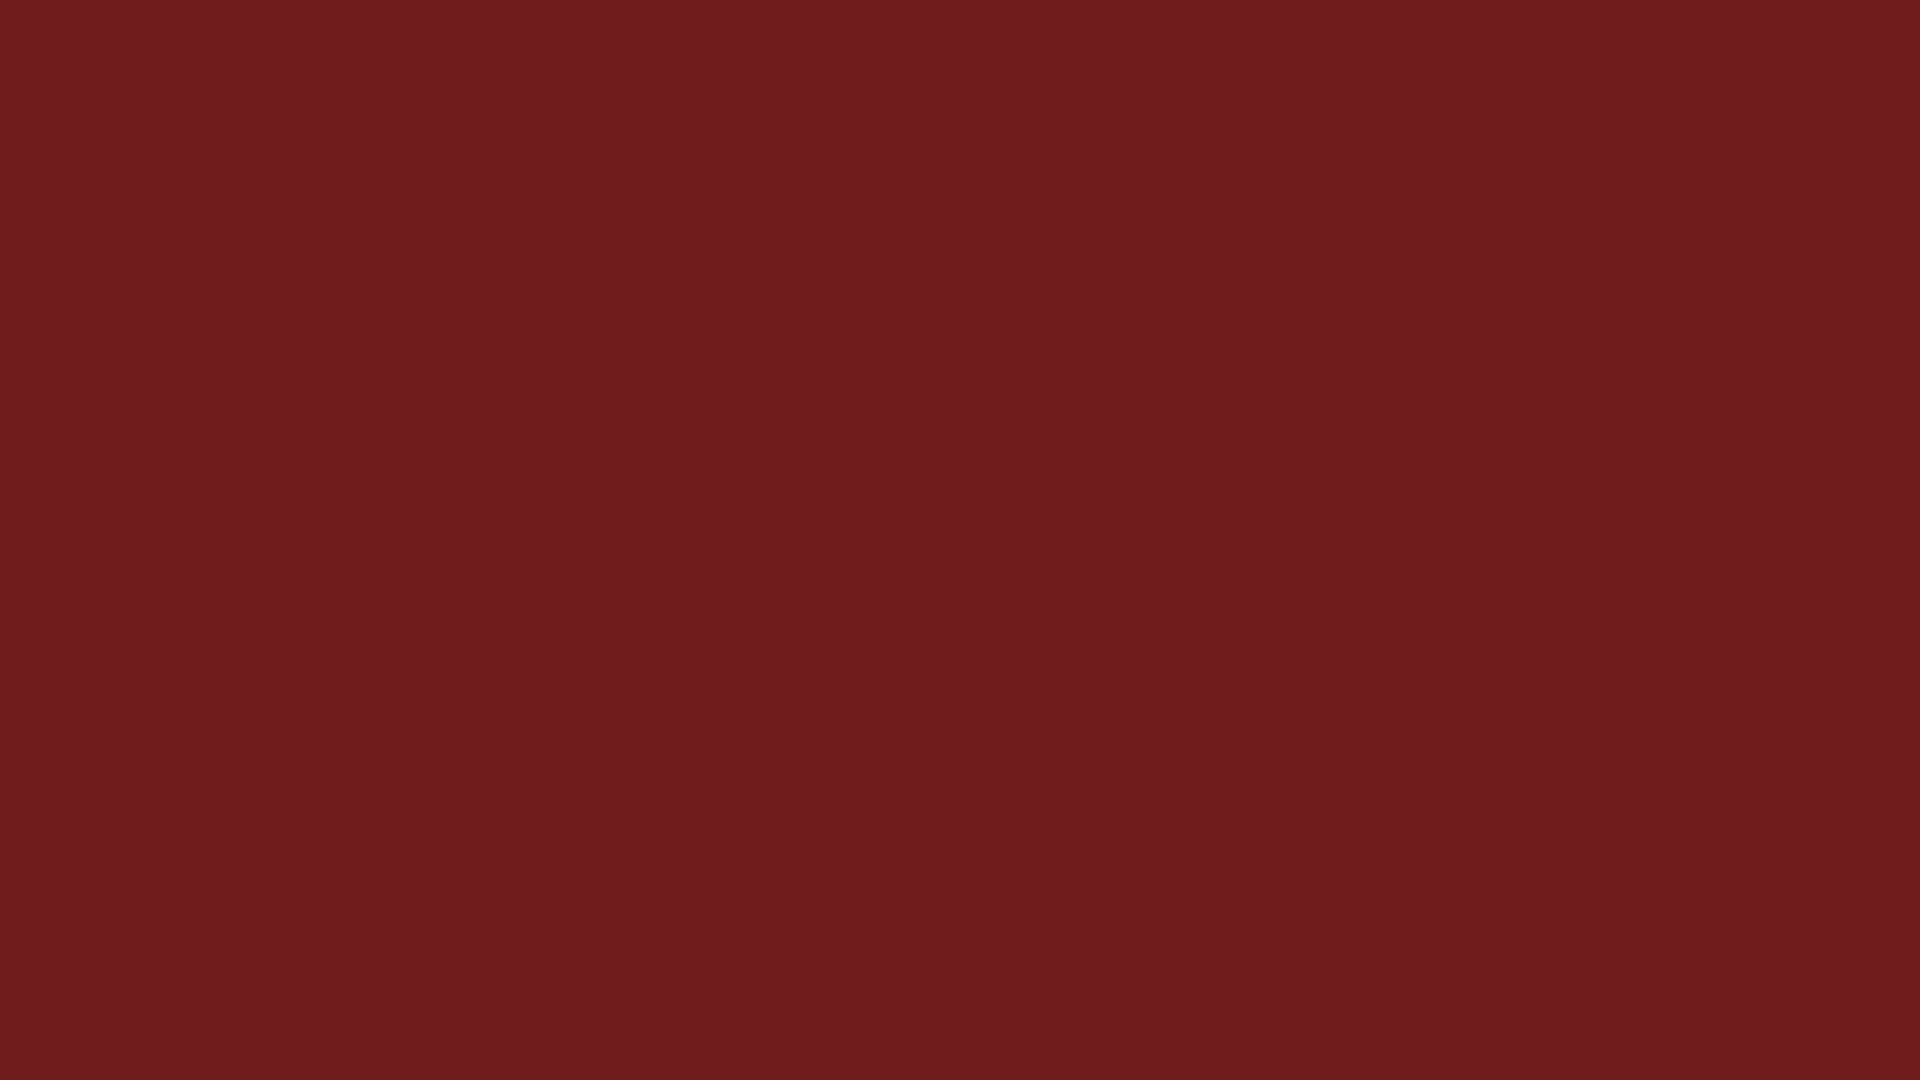 1920x1080 Prune Solid Color Background